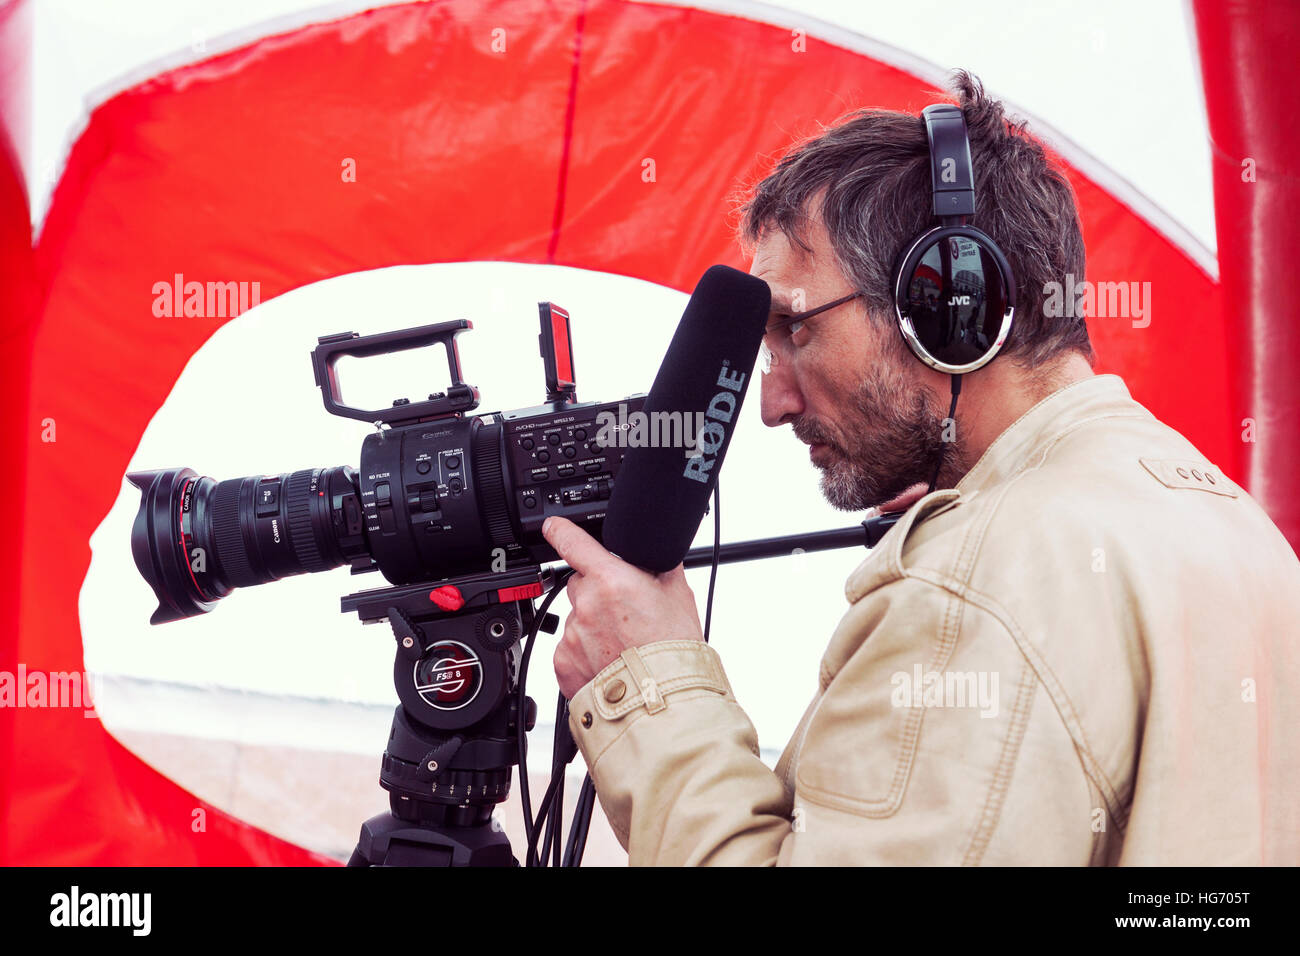 Closeup of cameraman shooting event on the street in Vilnius, Lithuania - Stock Image